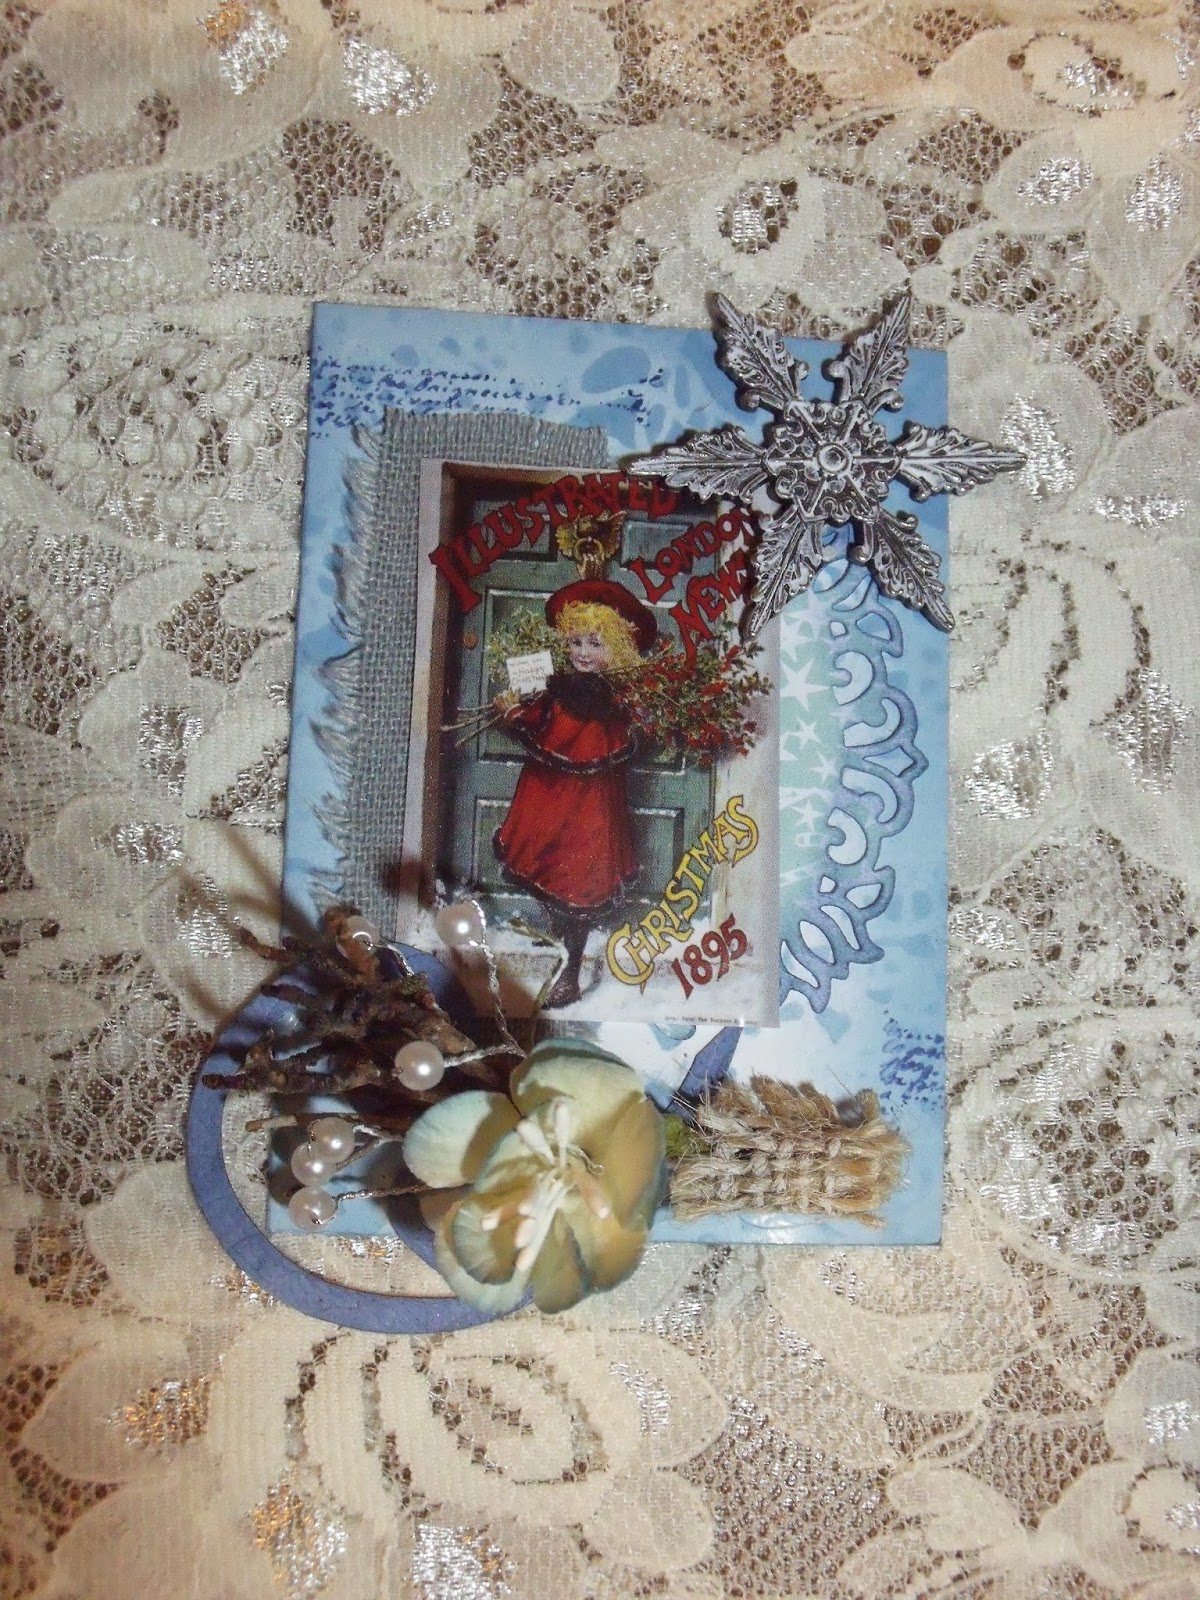 Pearshapedcrafting december 2014 i used tims doyly stencil with faded jeans distress ink for the background the twigs and pearls at the bottom were from an m and s napkin ring i painted m4hsunfo